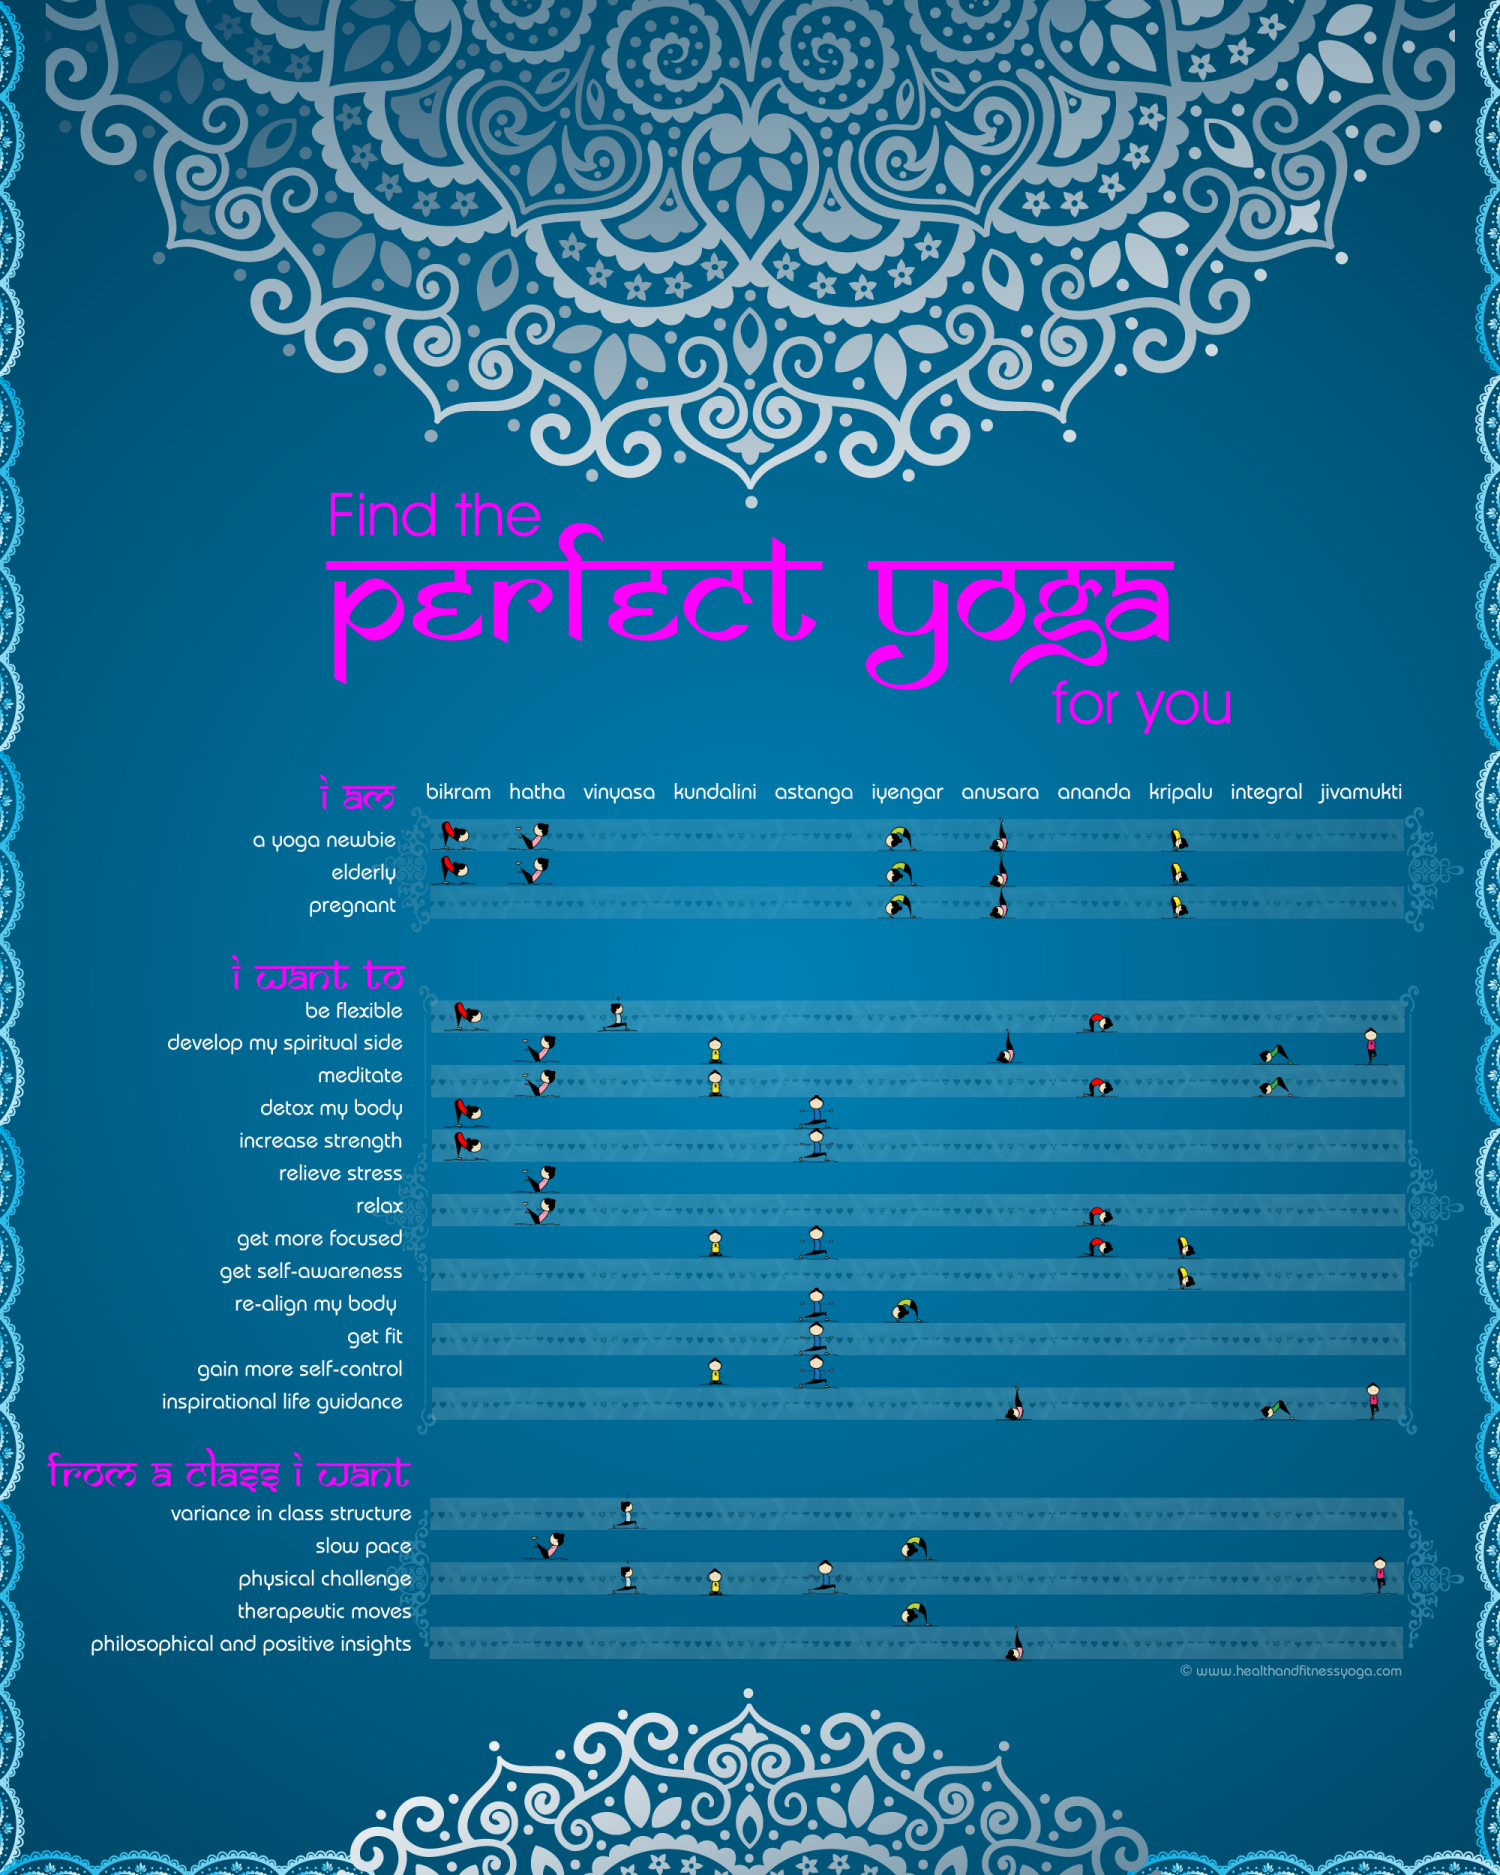 Find the perfect yoga for you Infographic